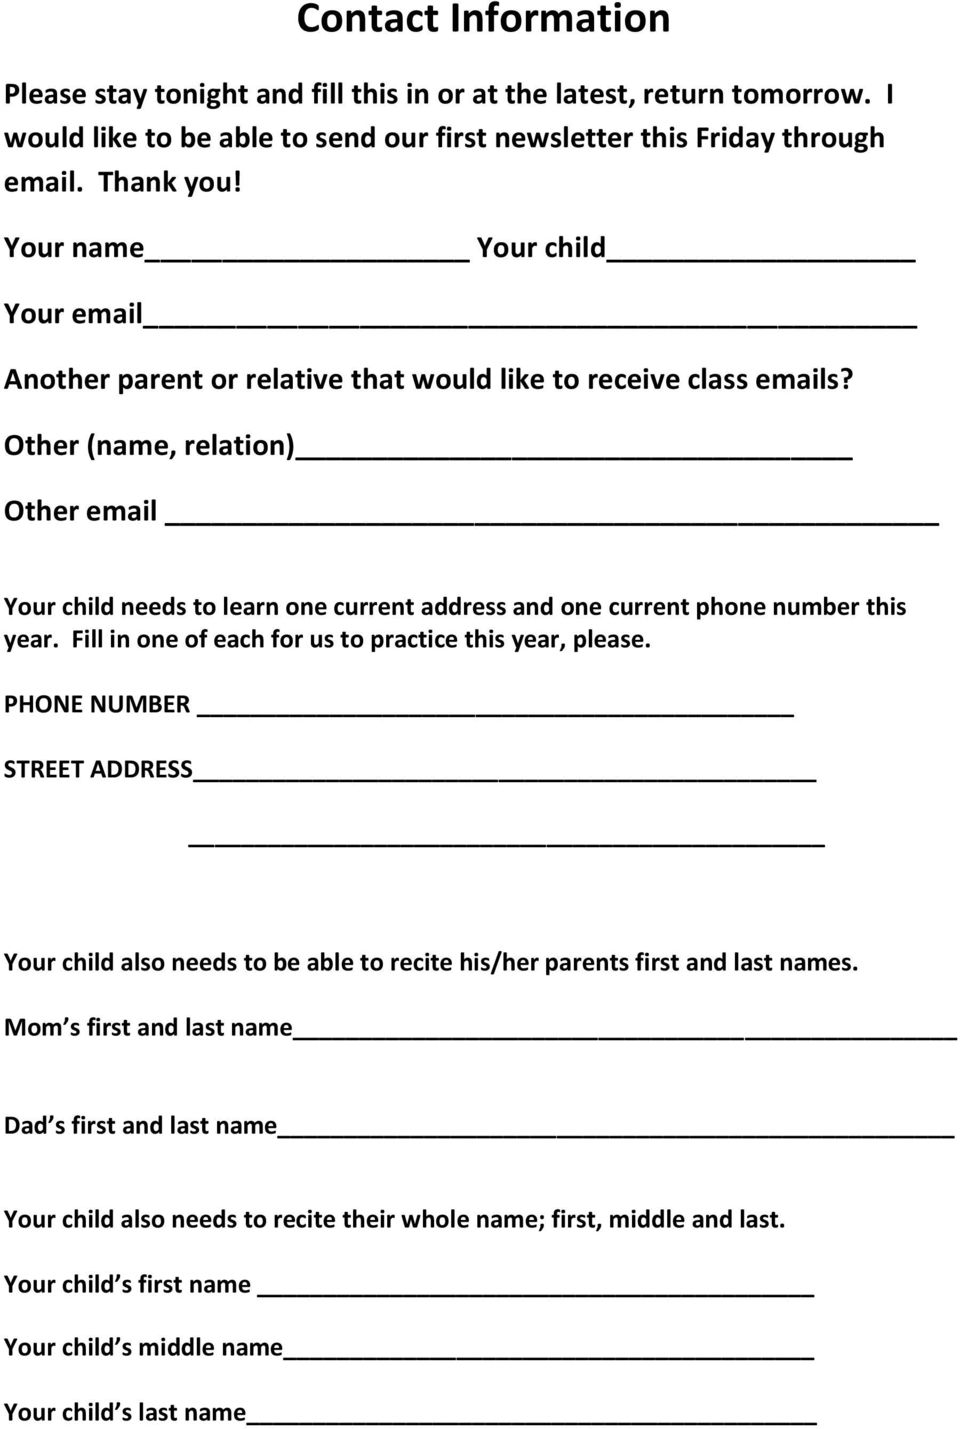 Other (name, relation) Other email Your child needs to learn one current address and one current phone number this year. Fill in one of each for us to practice this year, please.